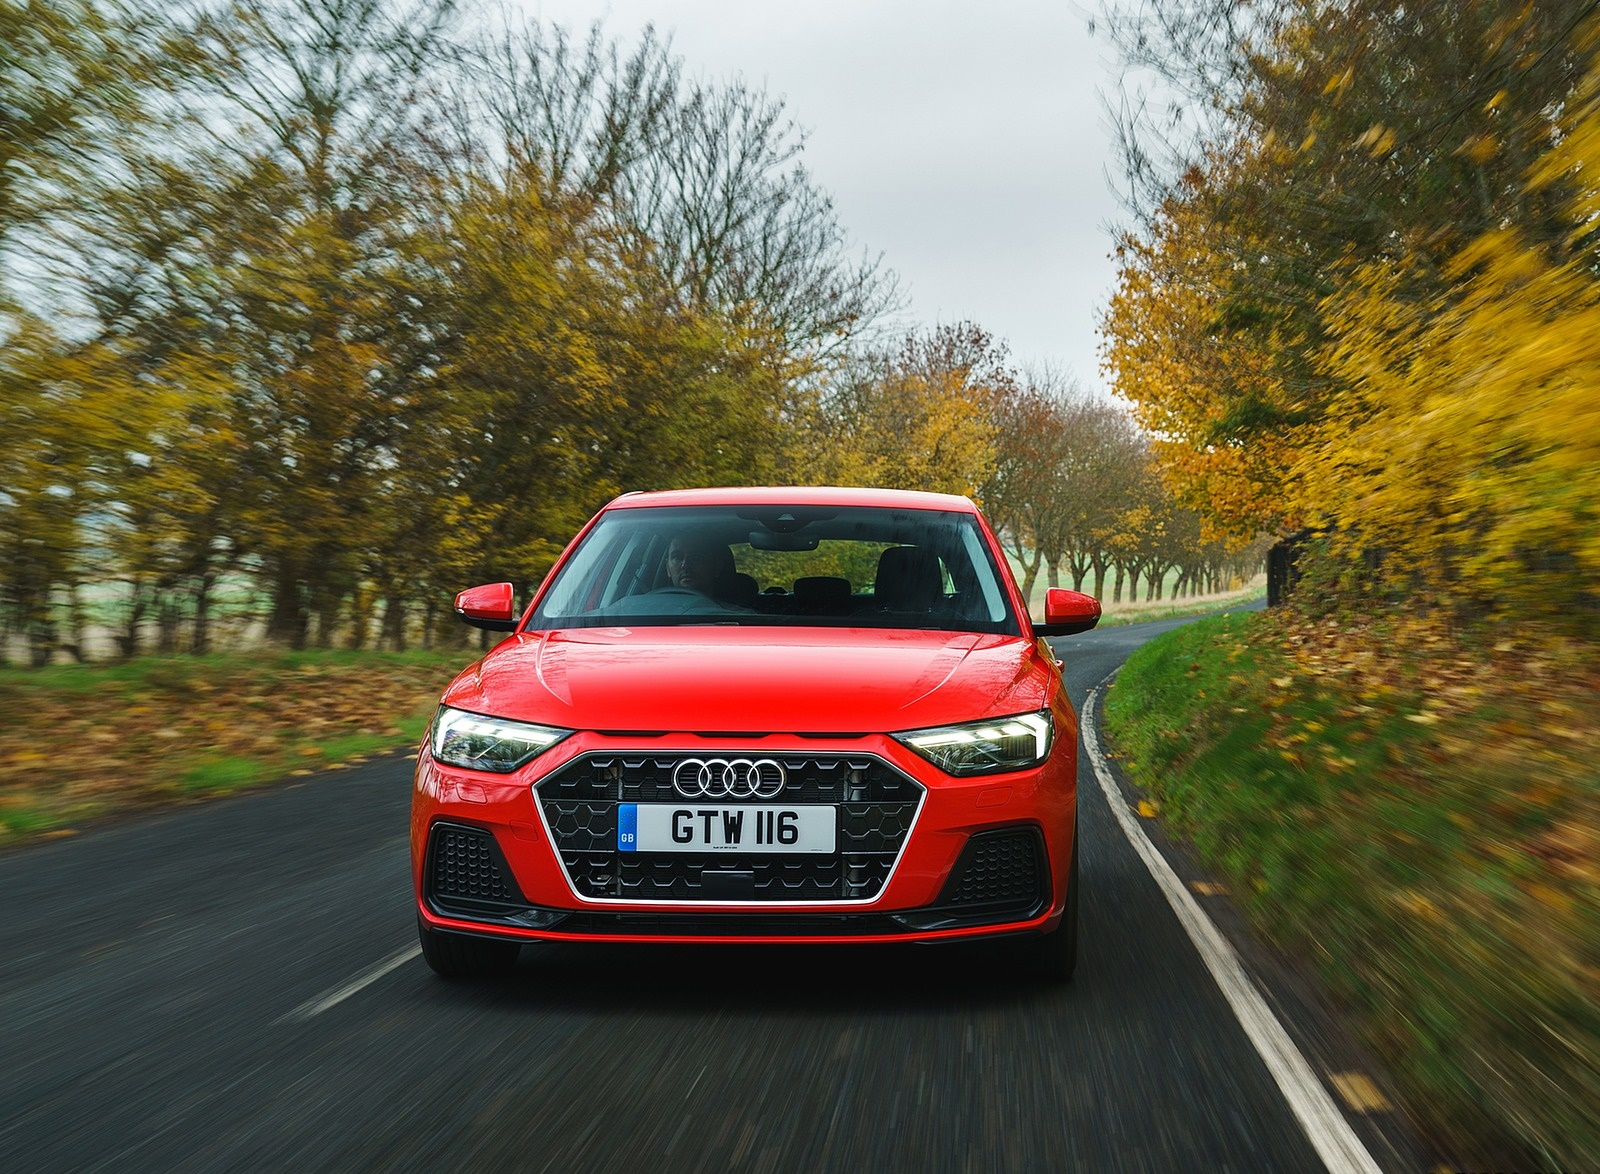 2019 Audi A1 Sportback 30 TFSI (UK-Spec) Front Wallpapers (5)